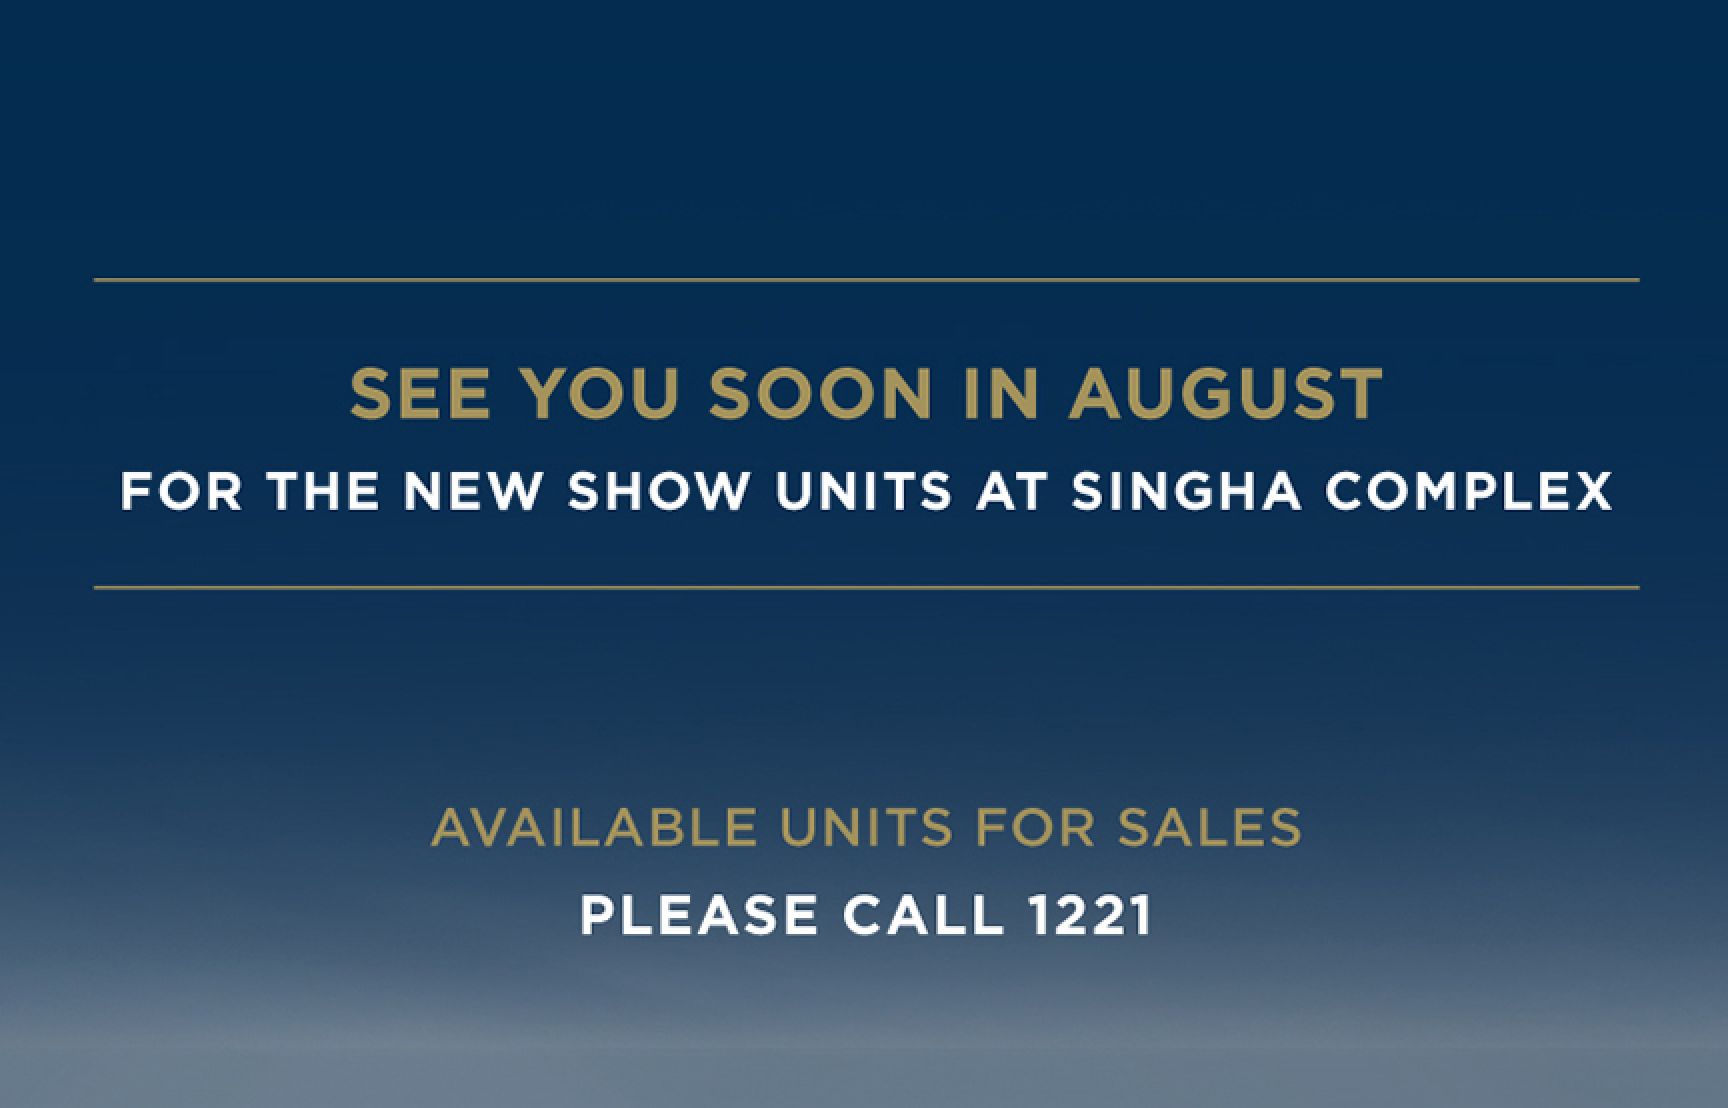 SEE YOU SOON IN AUGUST 2019 AT SINGHA COMPLEX